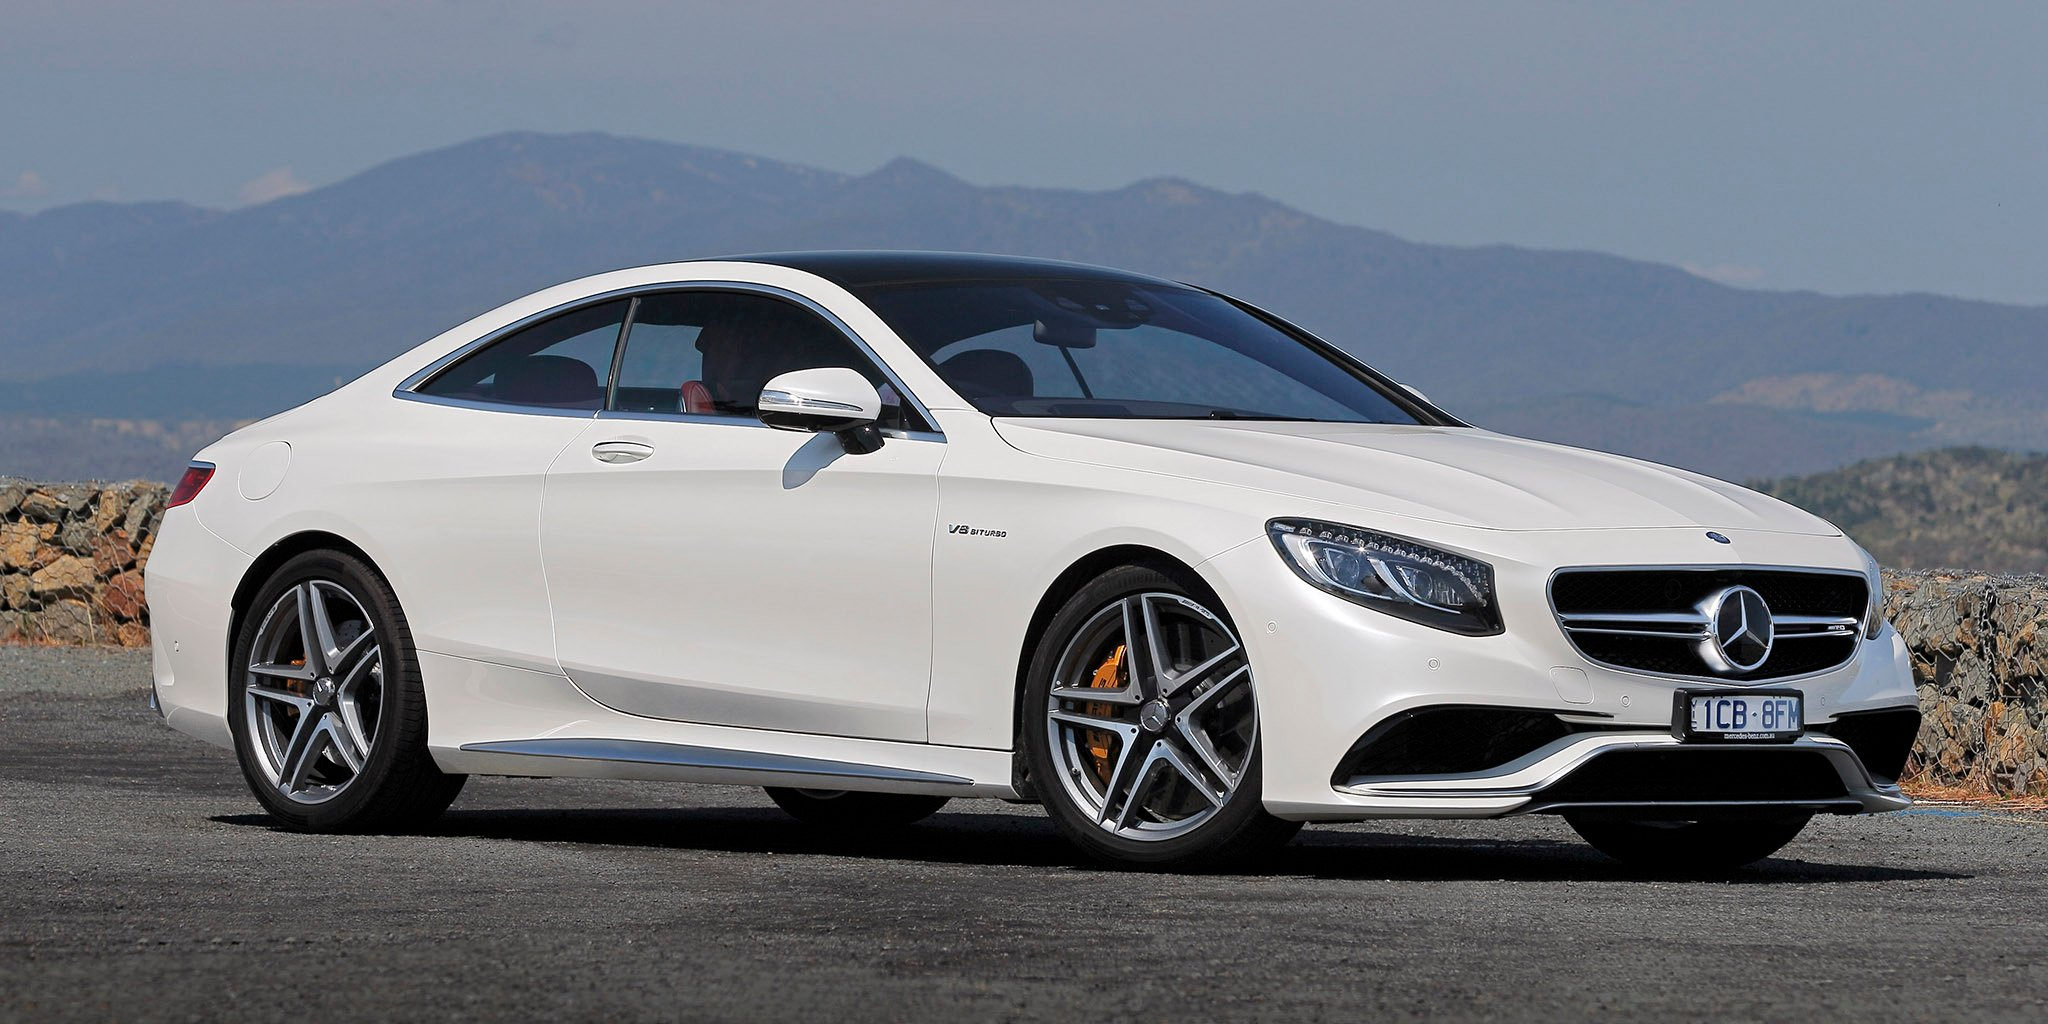 2015 mercedes benz s63 amg coupe review caradvice for The price of mercedes benz